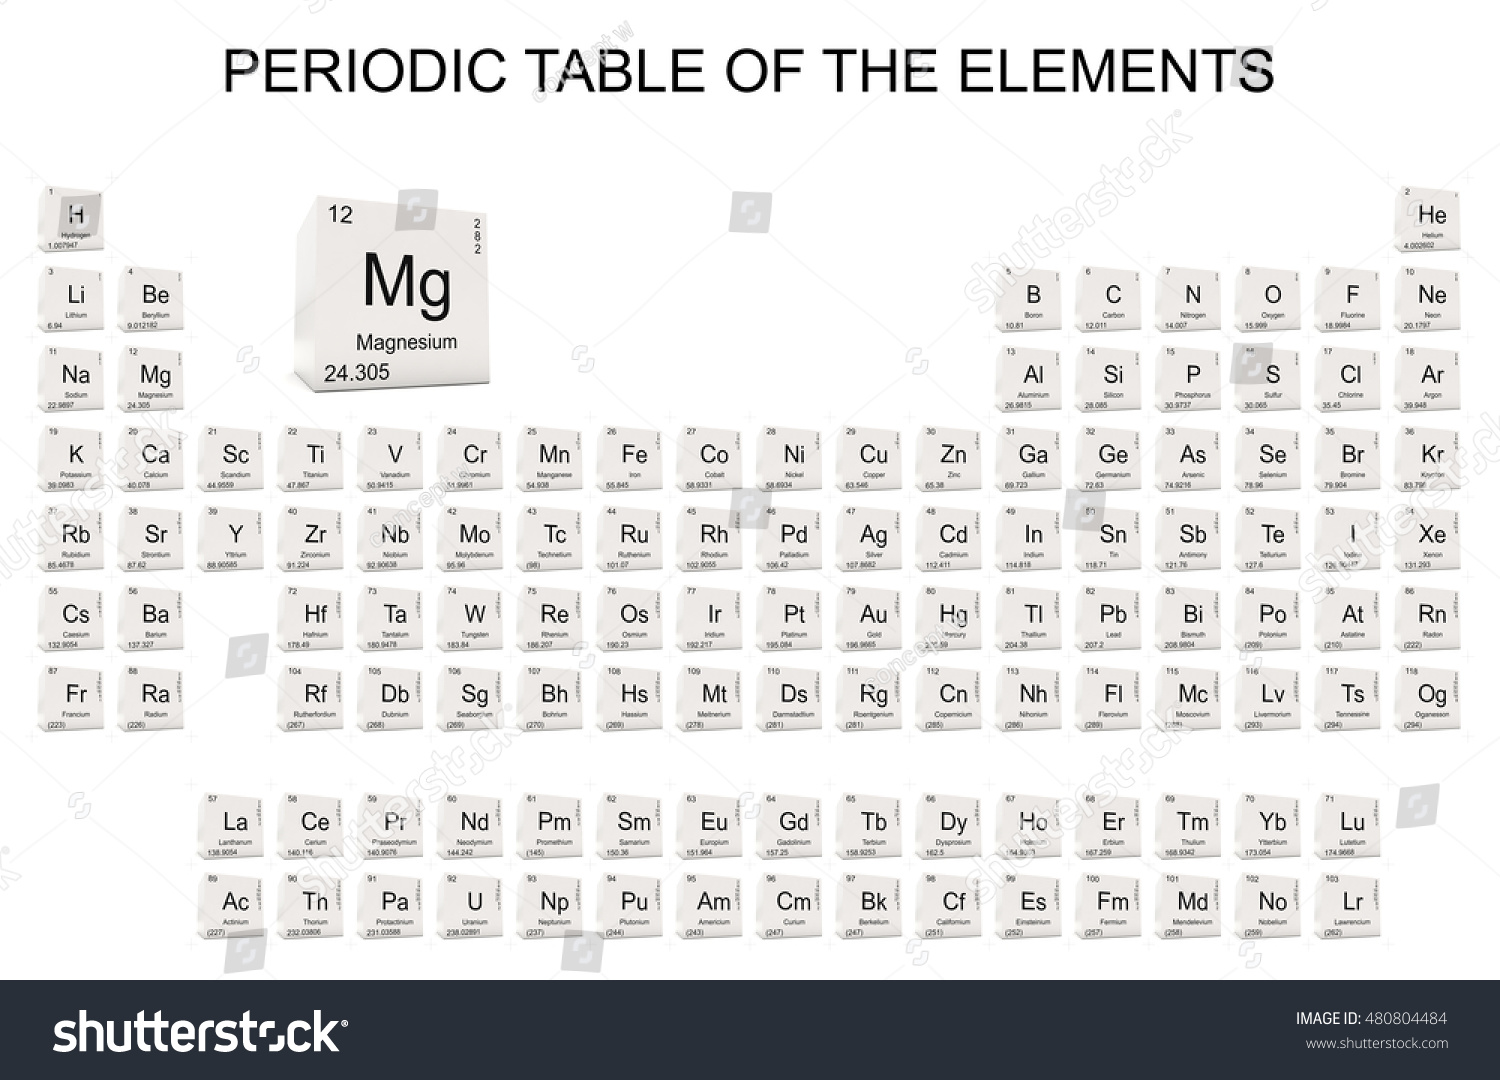 Periodic table elements icon set 3d stock illustration 480804484 periodic table of the elements icon set from 3d rendered white cubes isolated on white background gamestrikefo Images